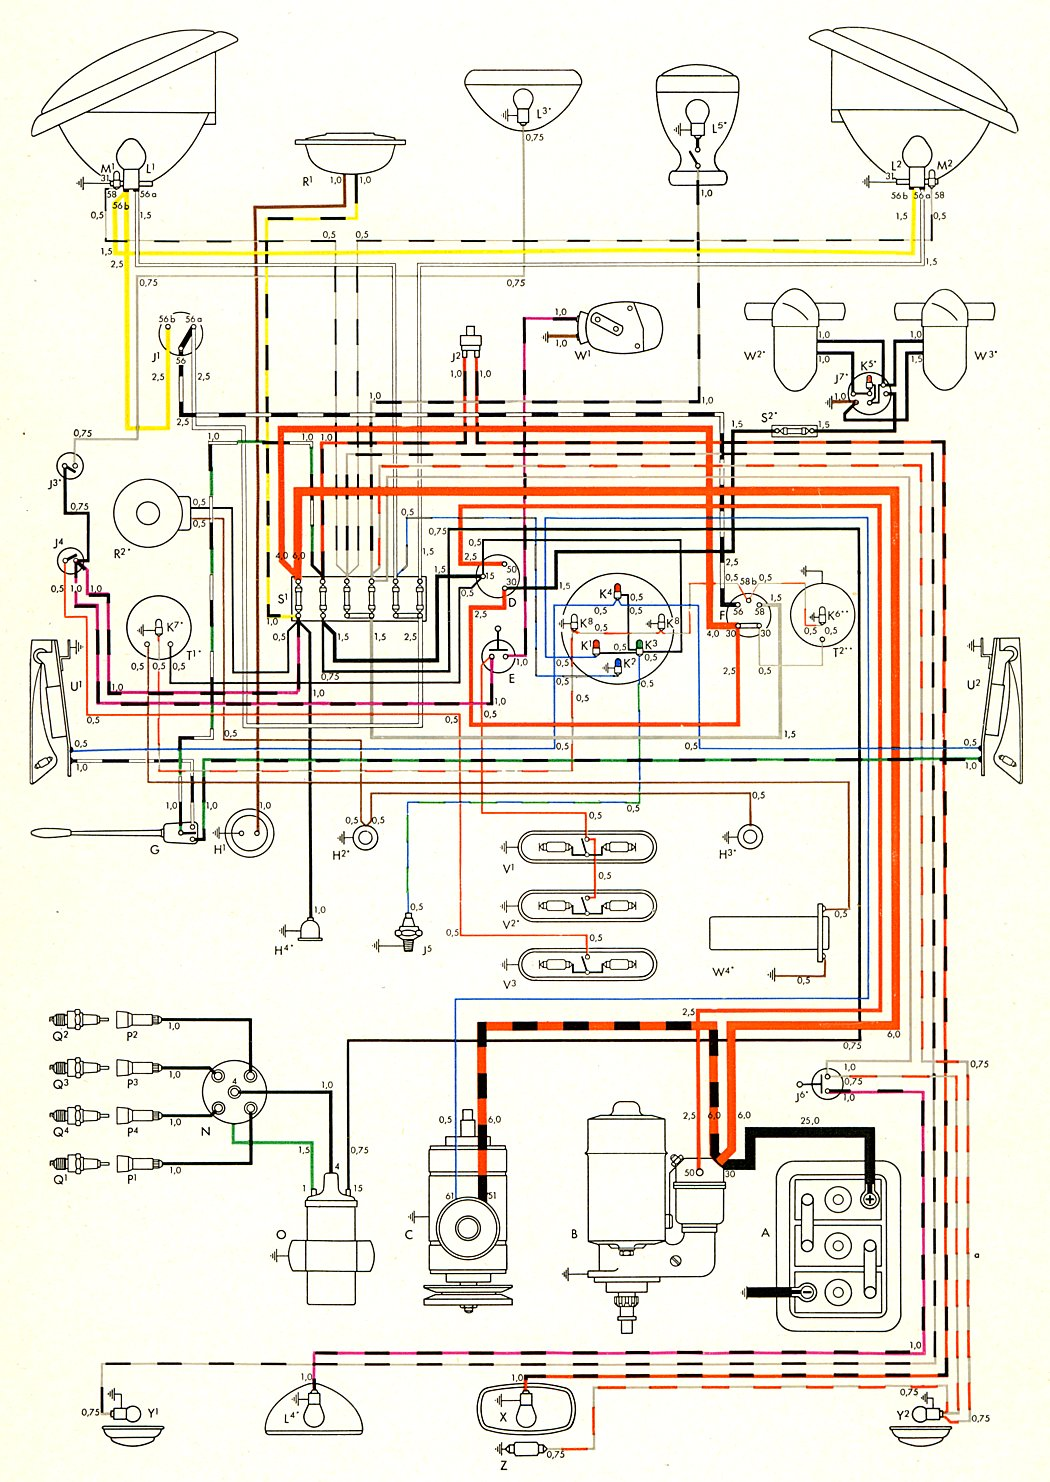 bus_nov57 1957 bus wiring diagram thegoldenbug com 74 vw bus wiring diagram at nearapp.co